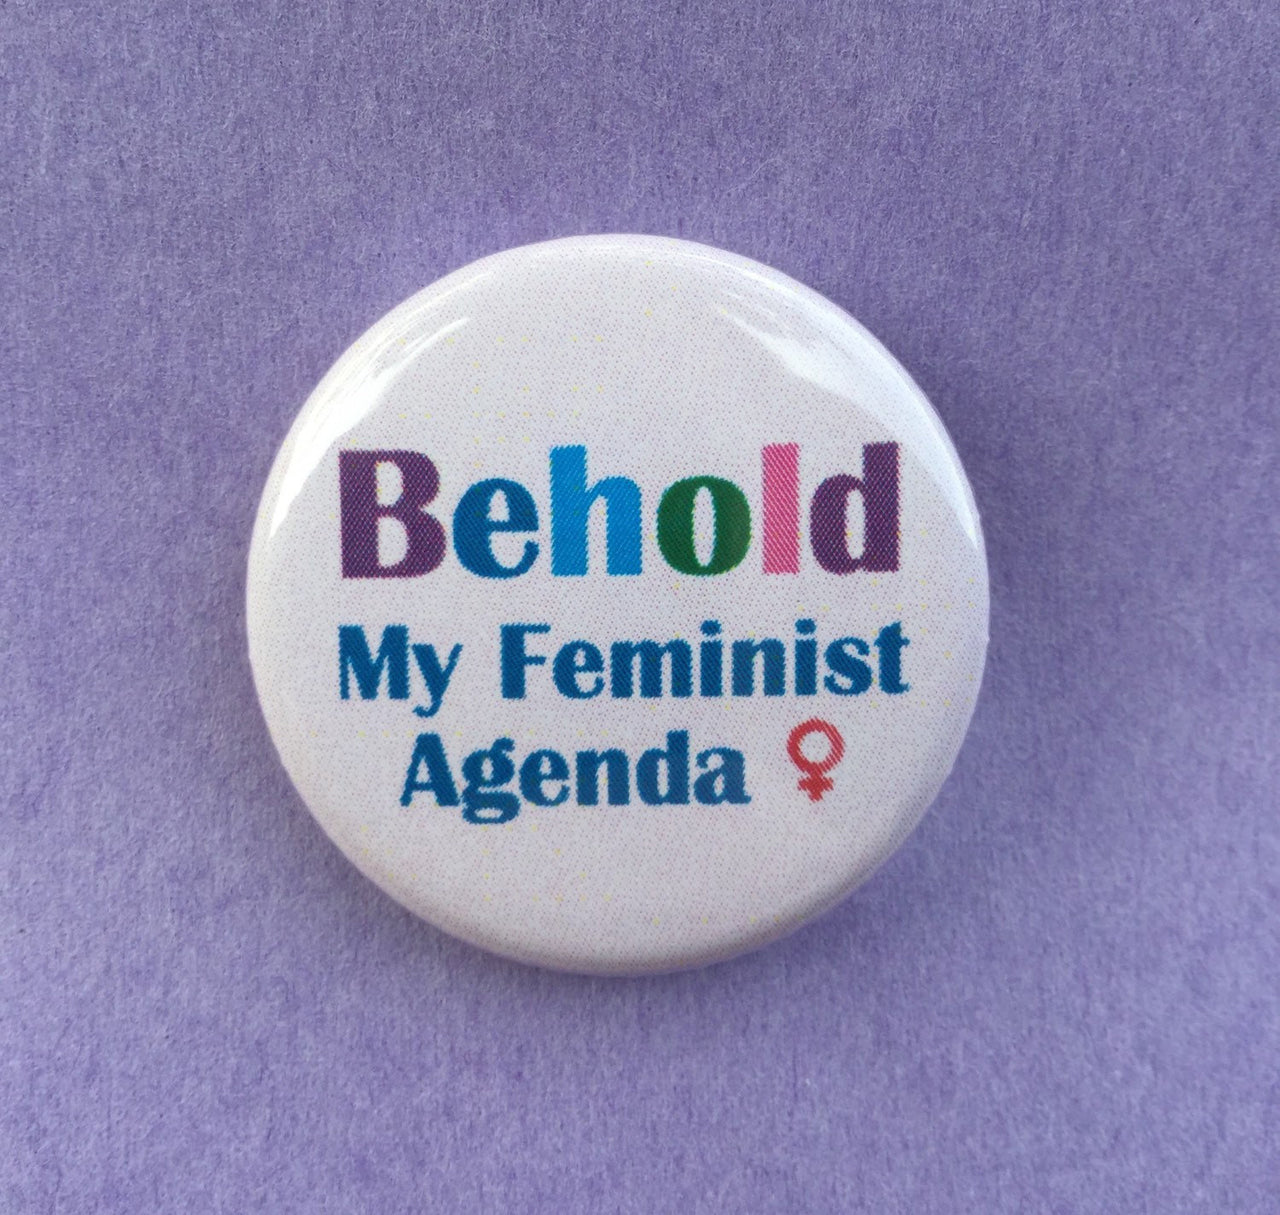 Behold my feminist agenda / Feminist button - Radical Buttons